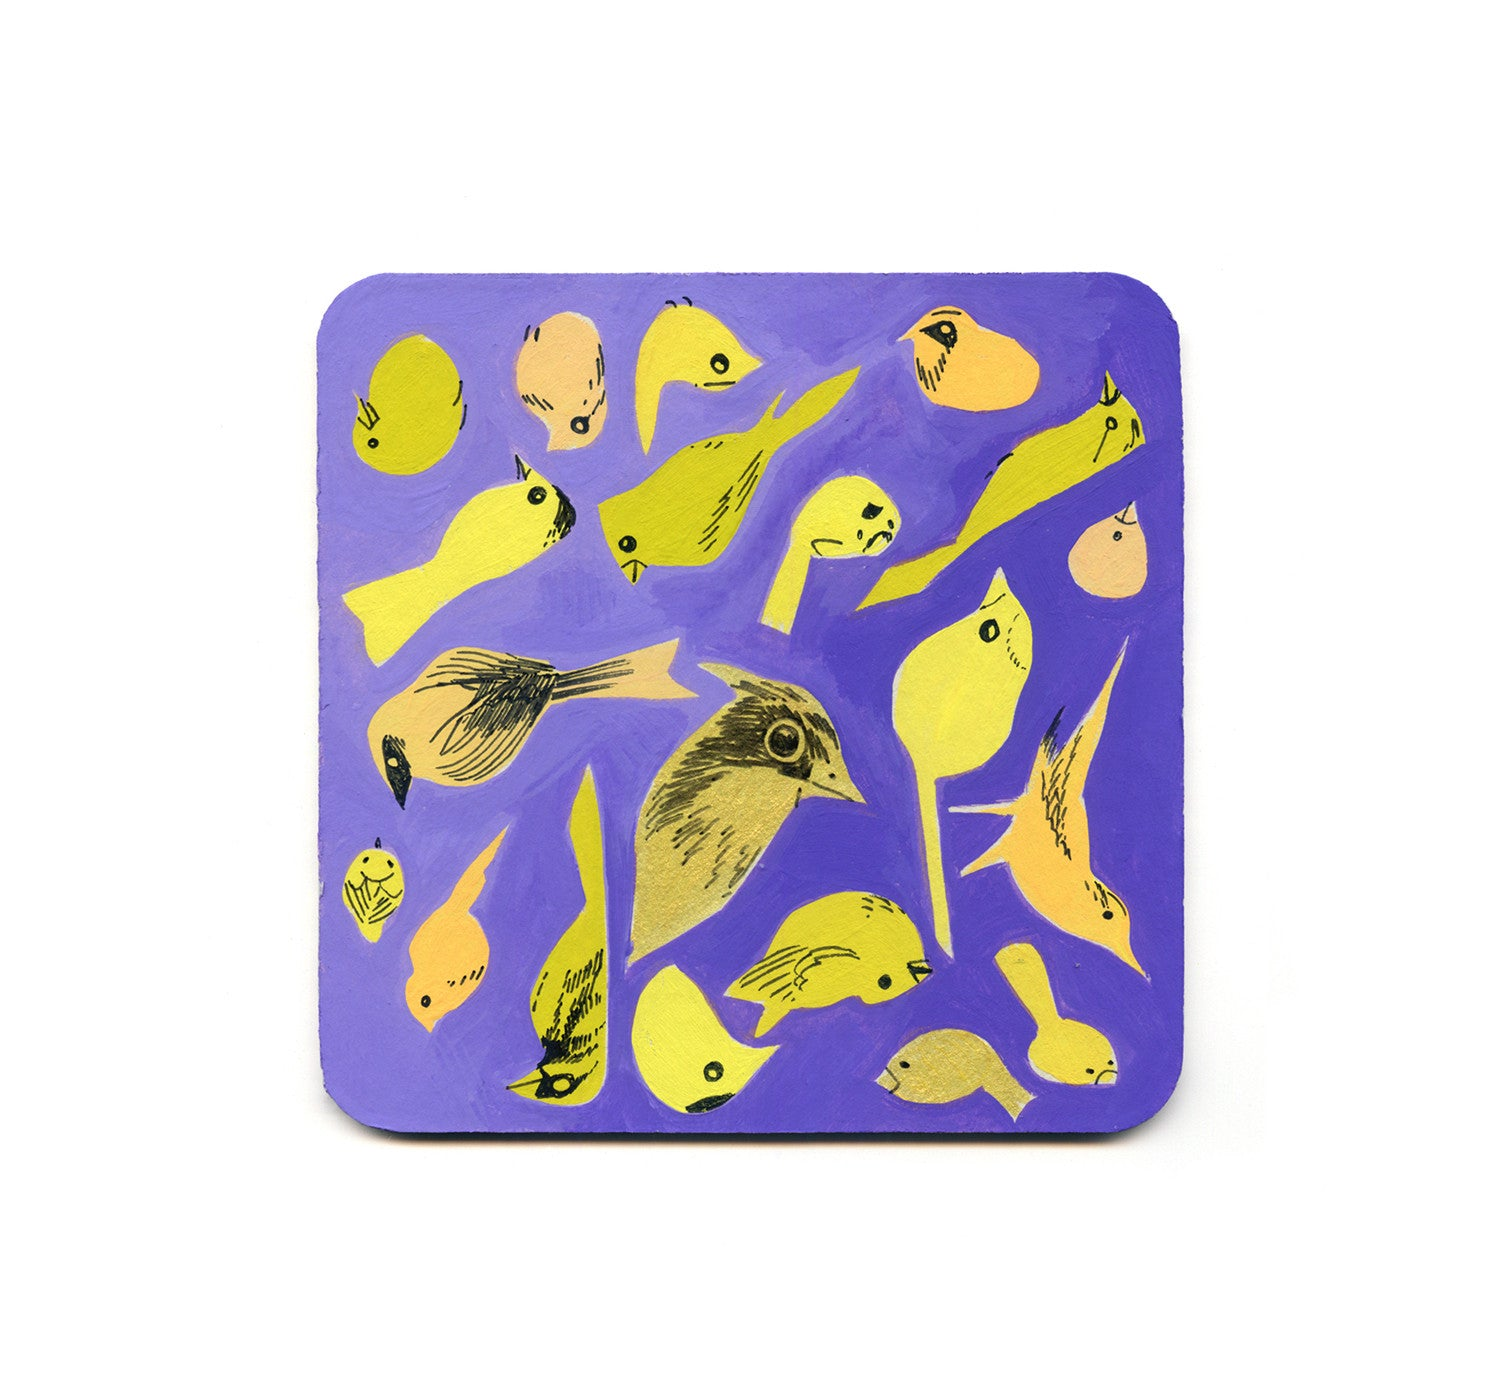 Veronica Fish - Warblers Coaster